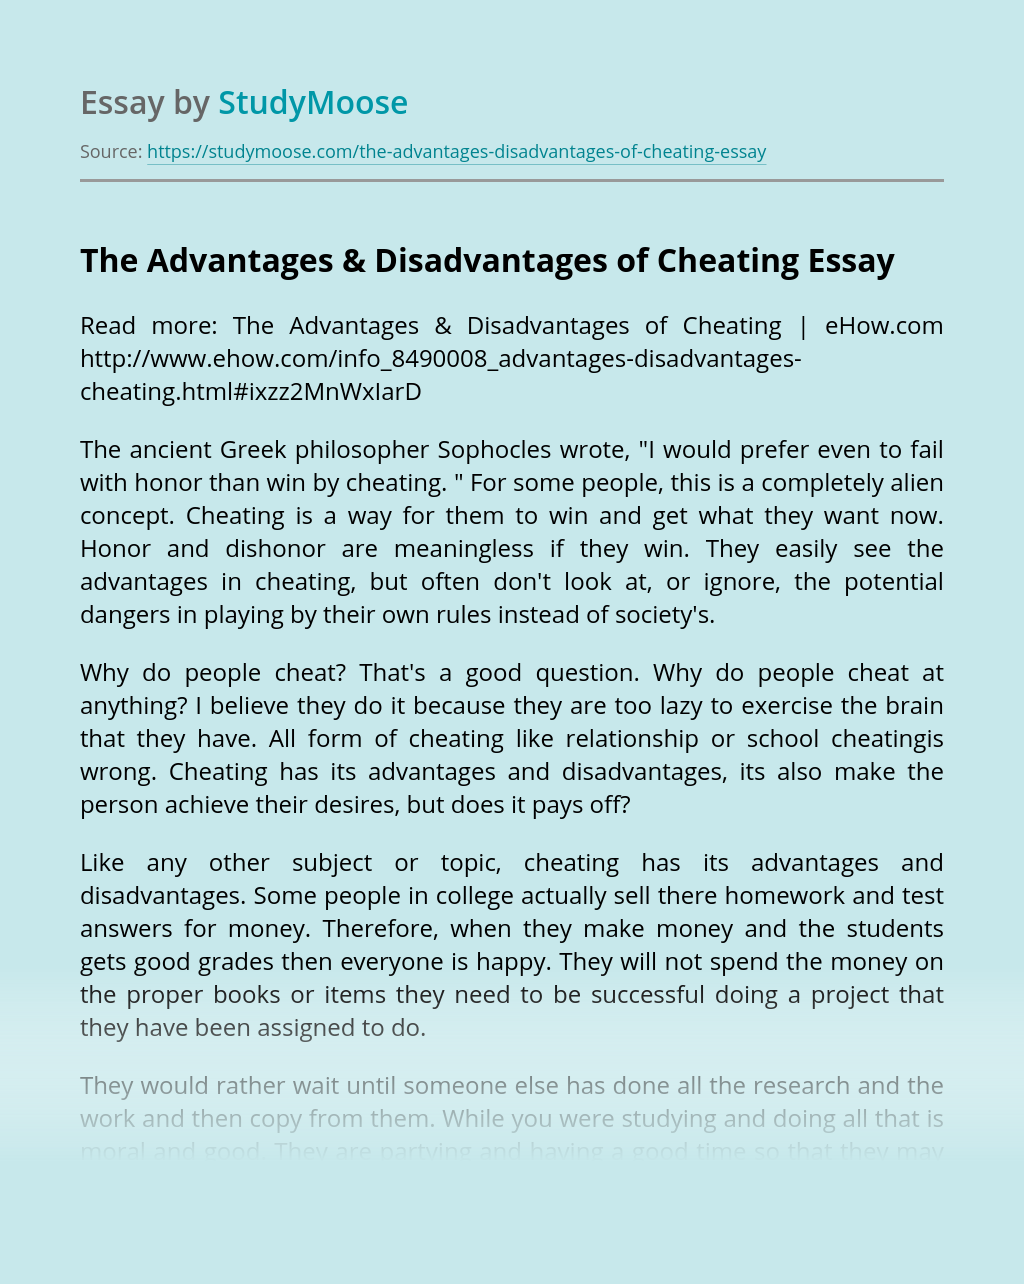 The Advantages & Disadvantages of Cheating